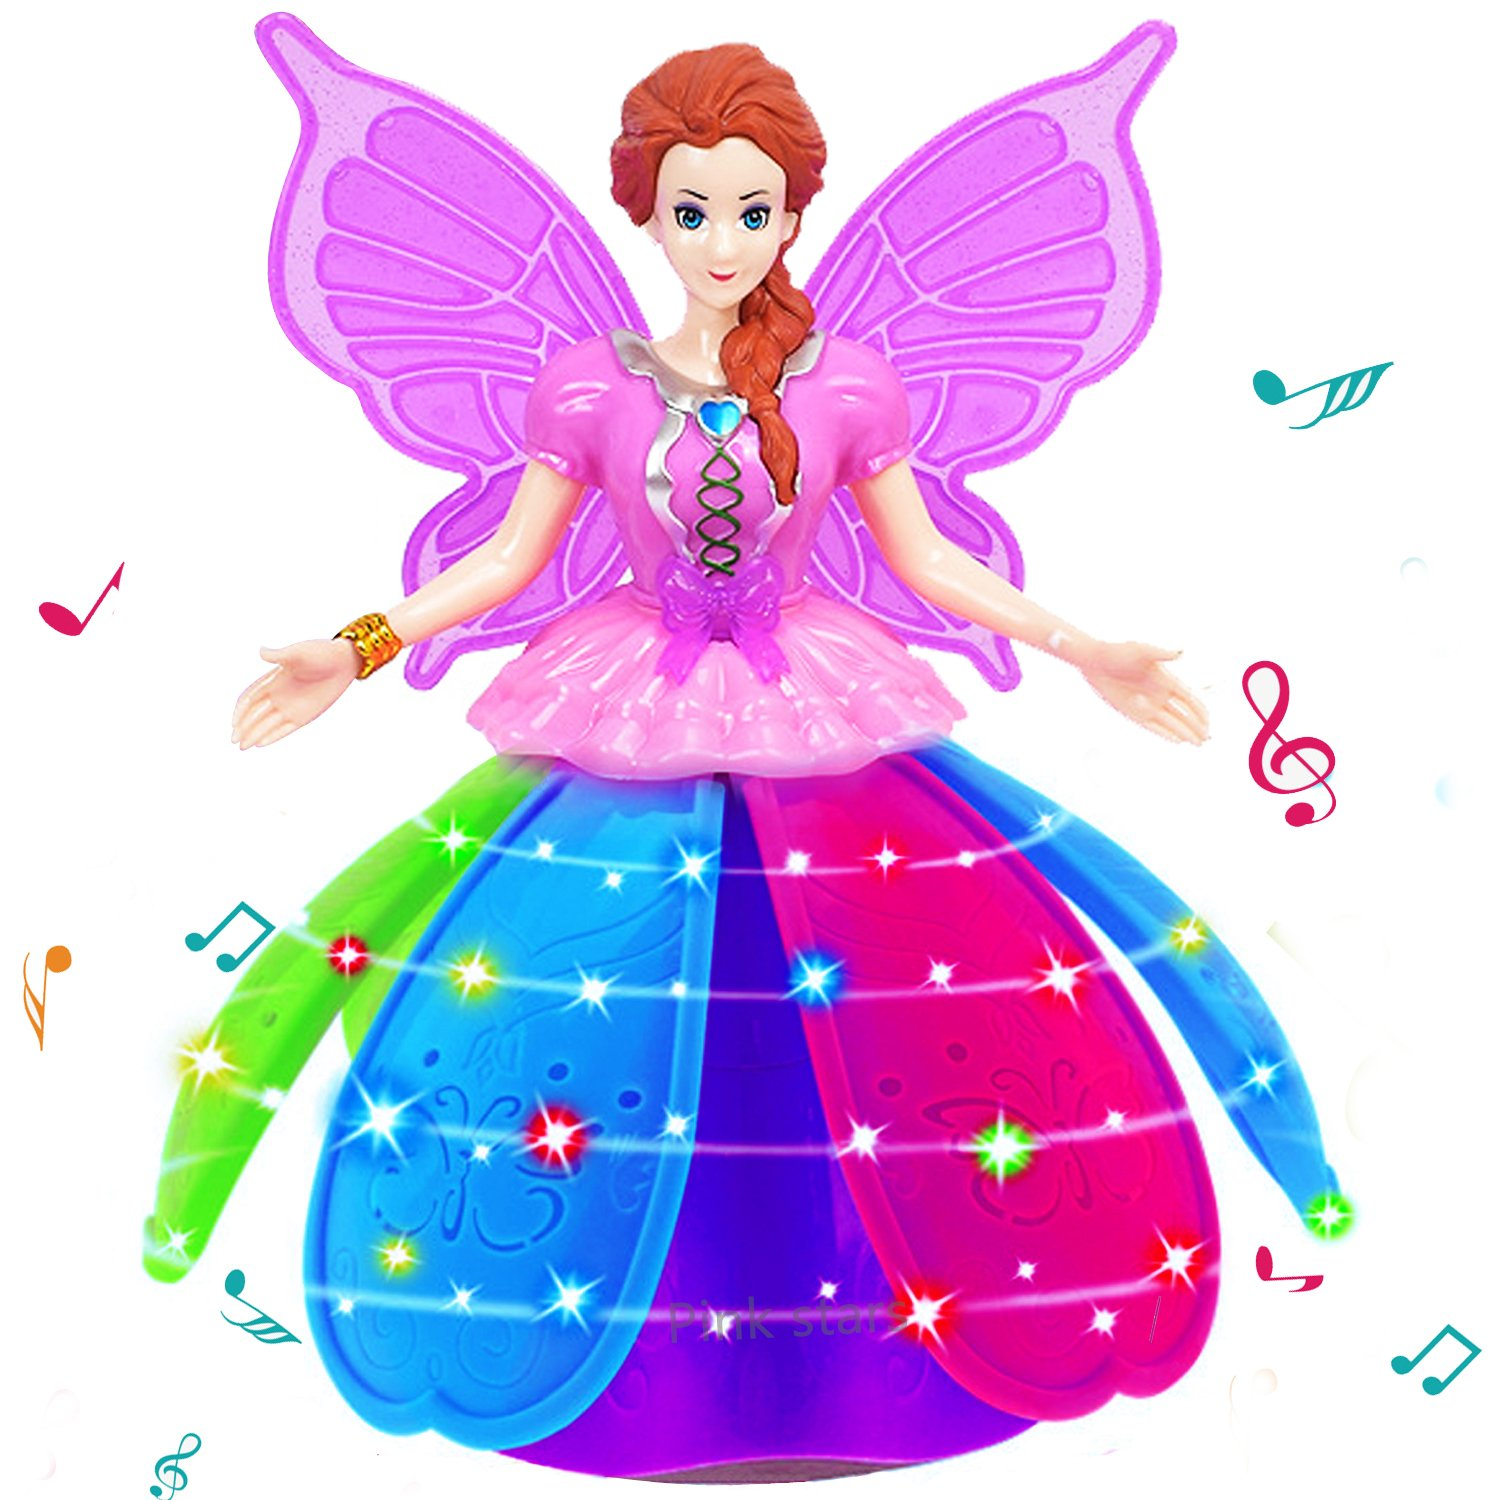 5 Year Old Girl Princess Doll Toy Rotating Dancing Robot Toys Music Led Light Lnteractive Toys Colorful Projection Lamp Petal Skirt